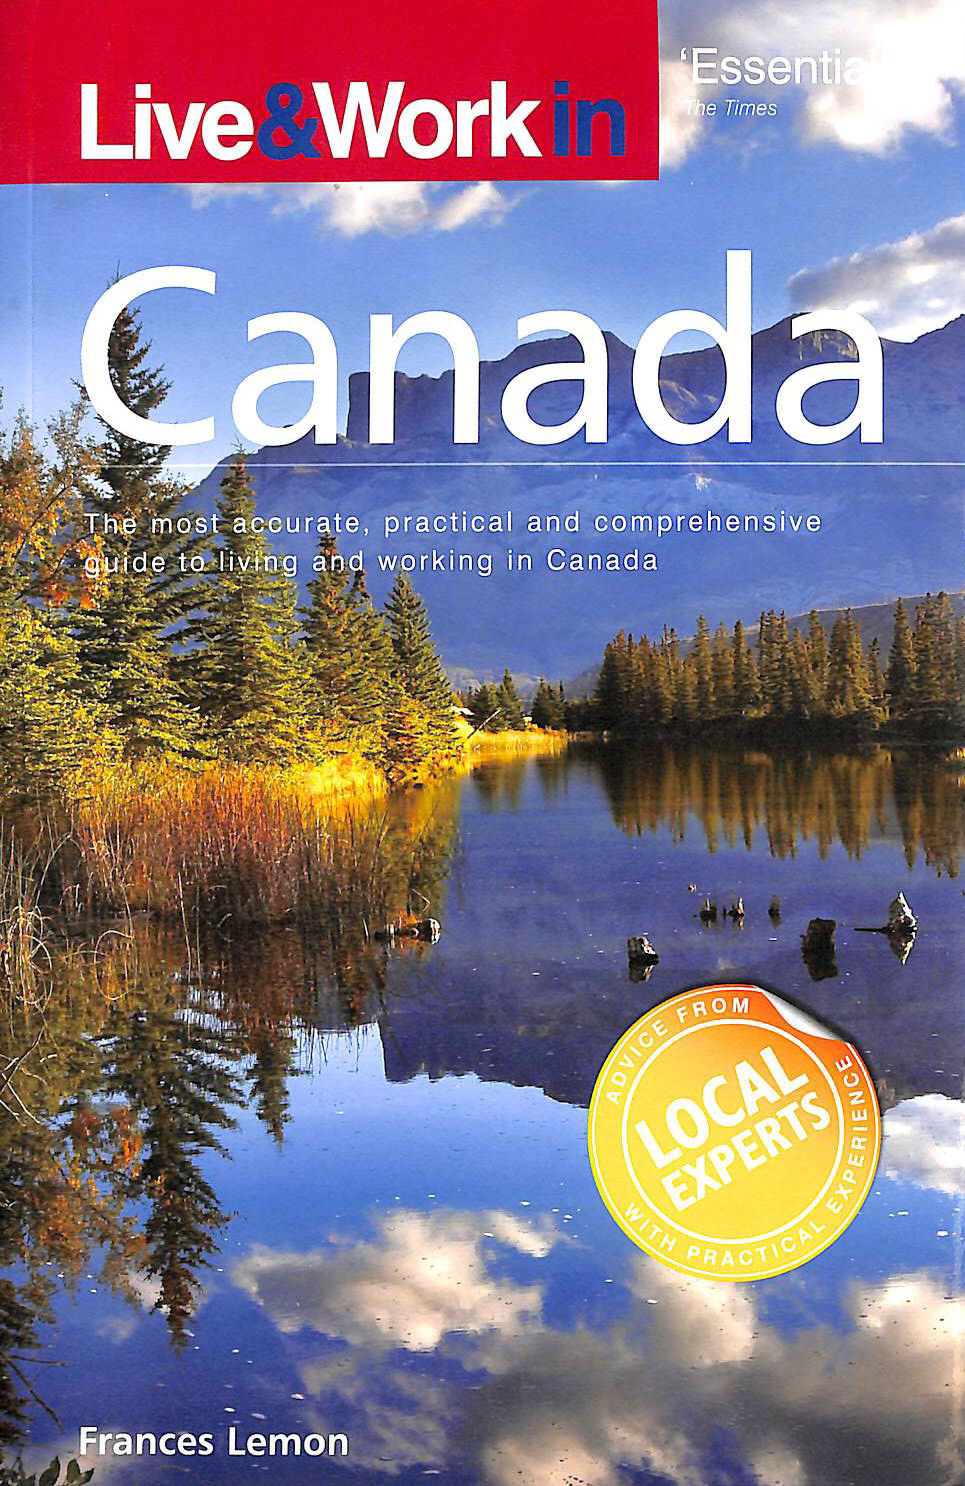 Image for Live and Work in Canada: The most accurate, practical and comprehensive guide to living in Canada